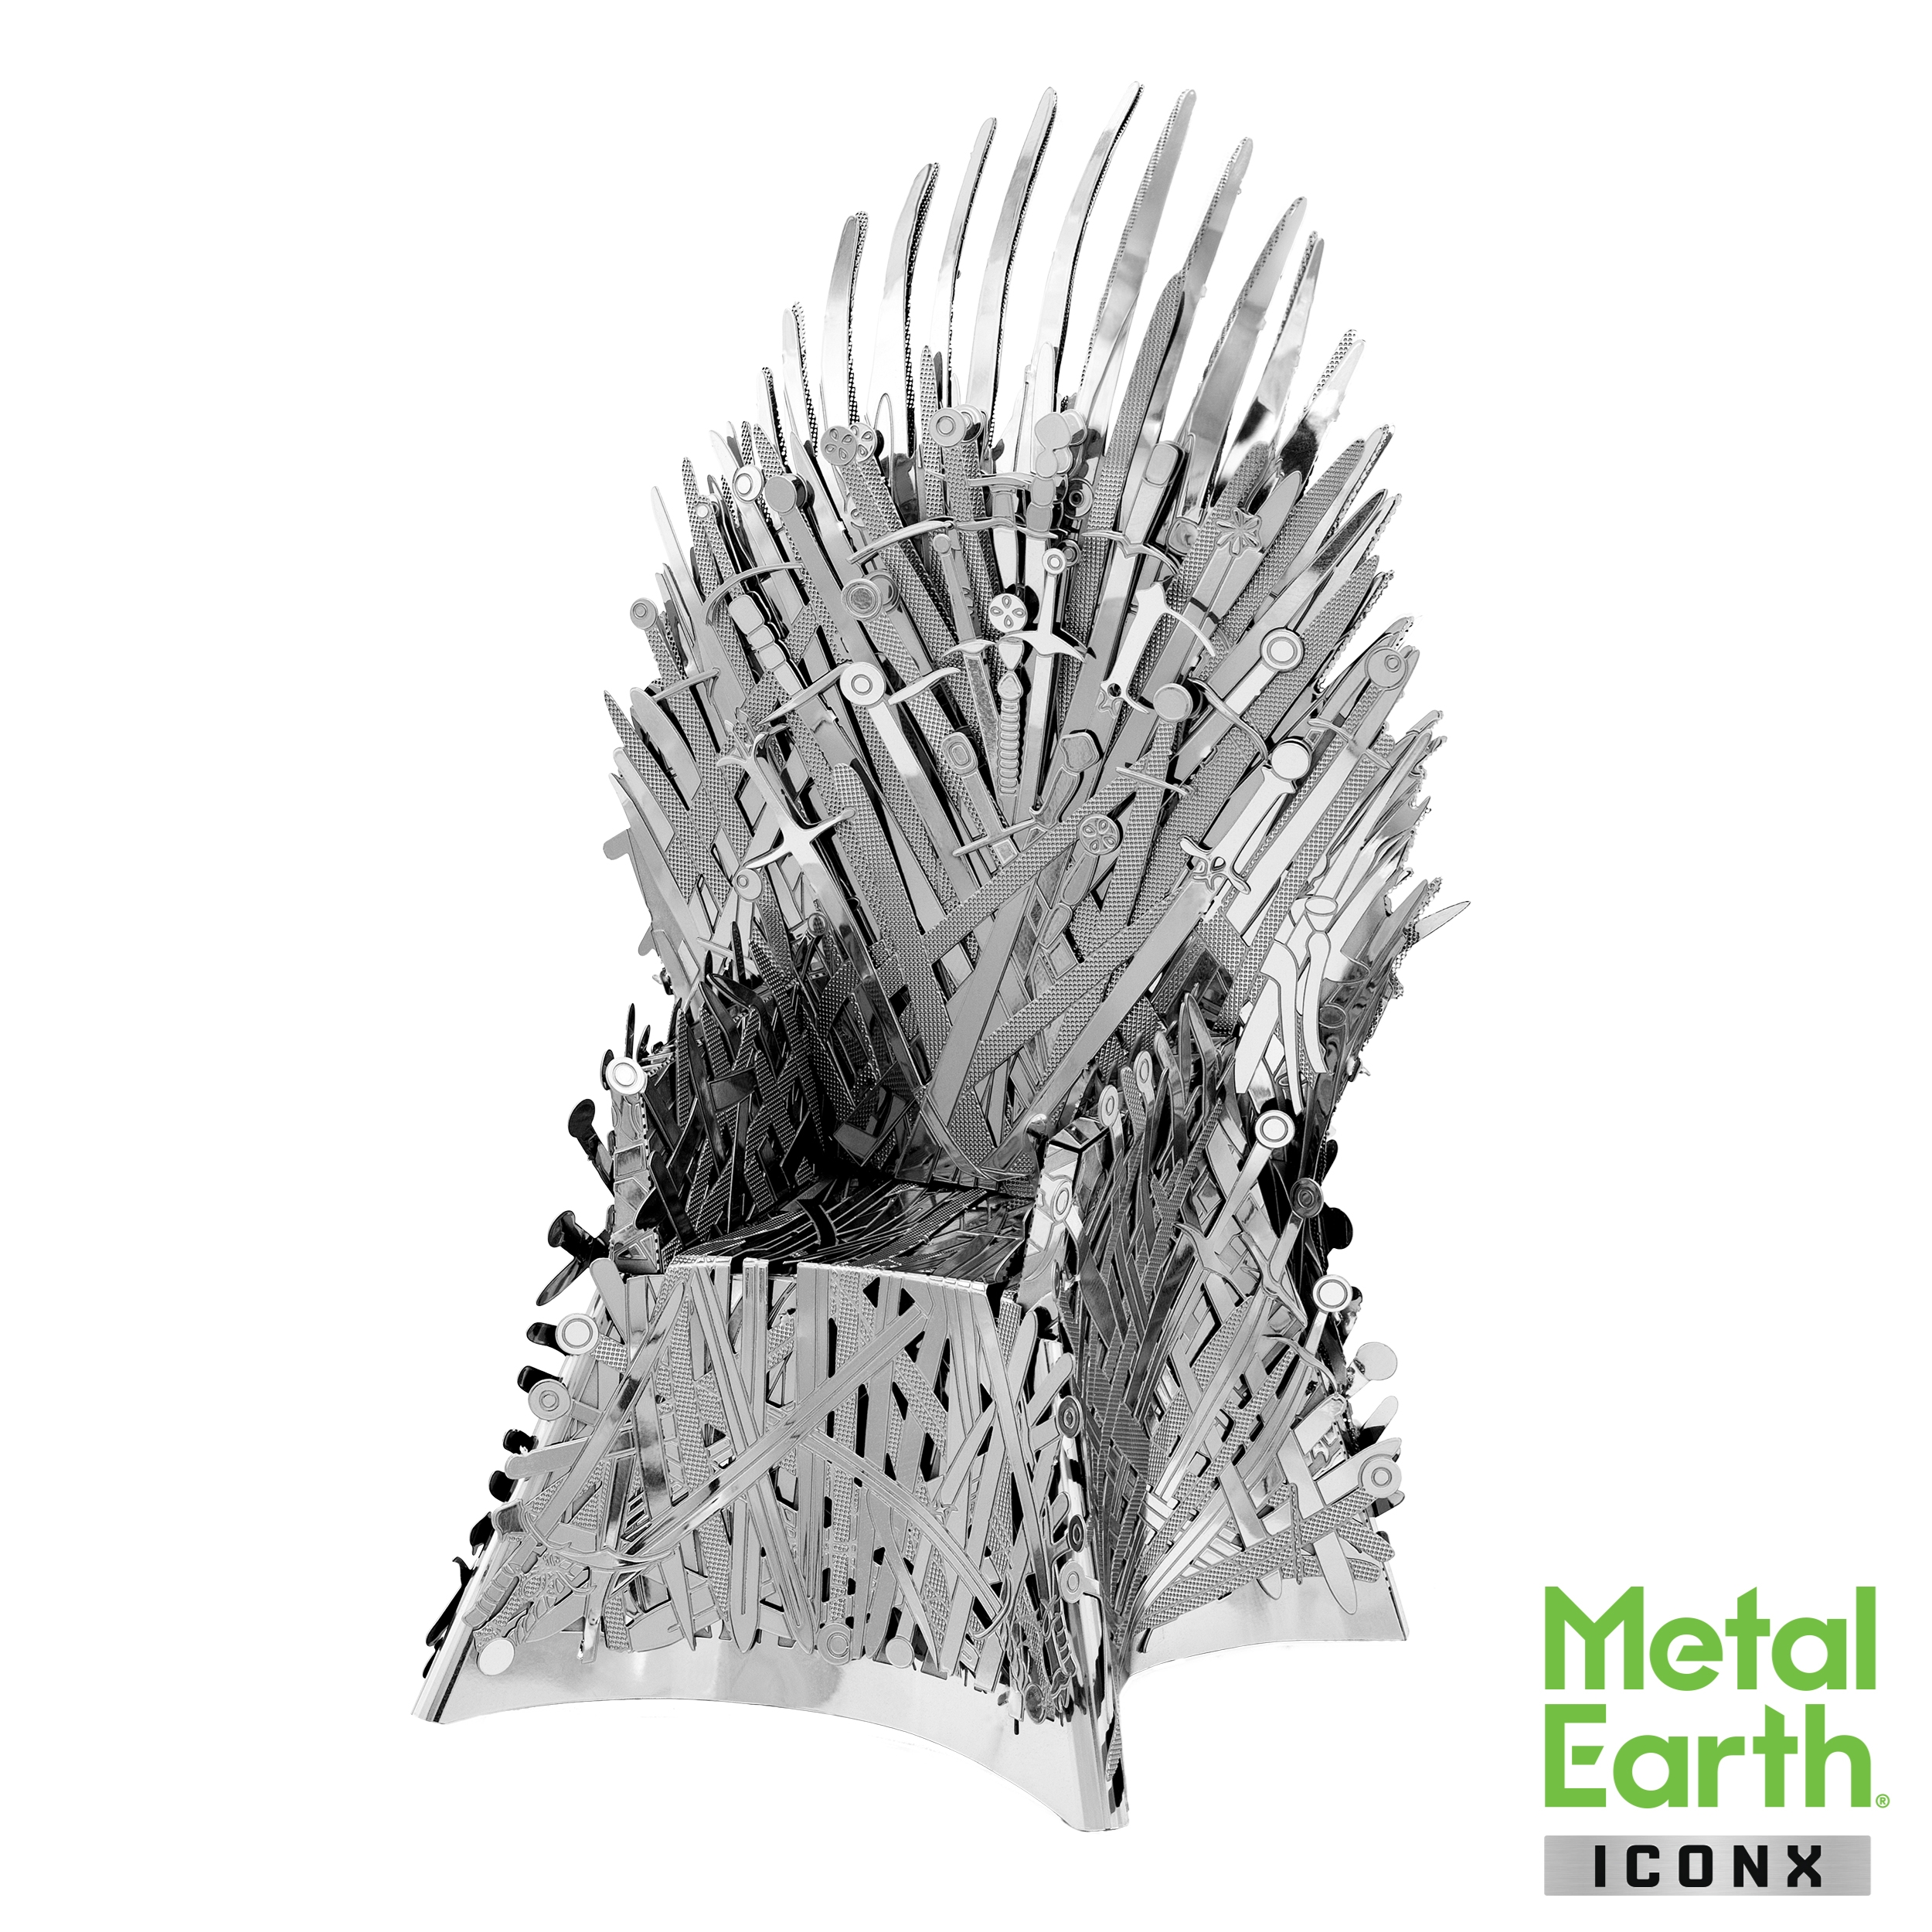 The Iron Throne Model - Game of Thrones models by Metal Earth